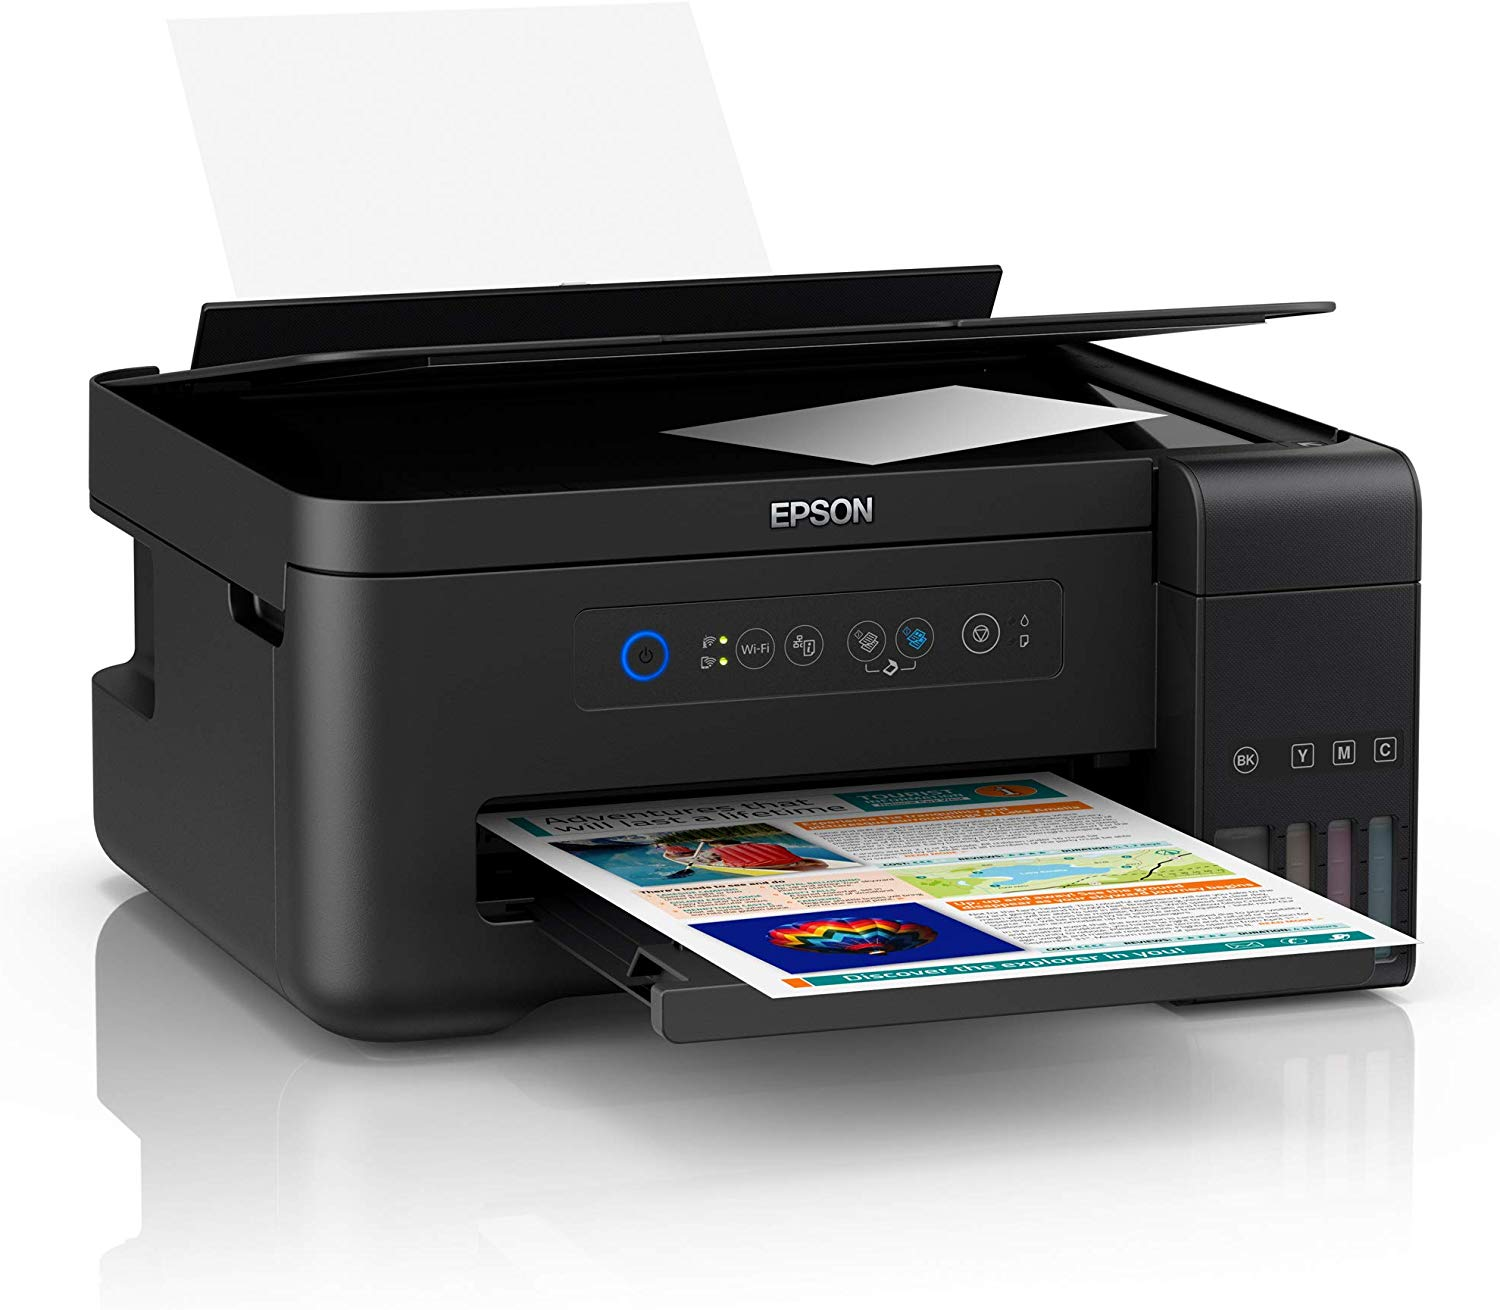 Epson L4150 All-in-One Wireless Ink Tank Colour Printer cum scanner